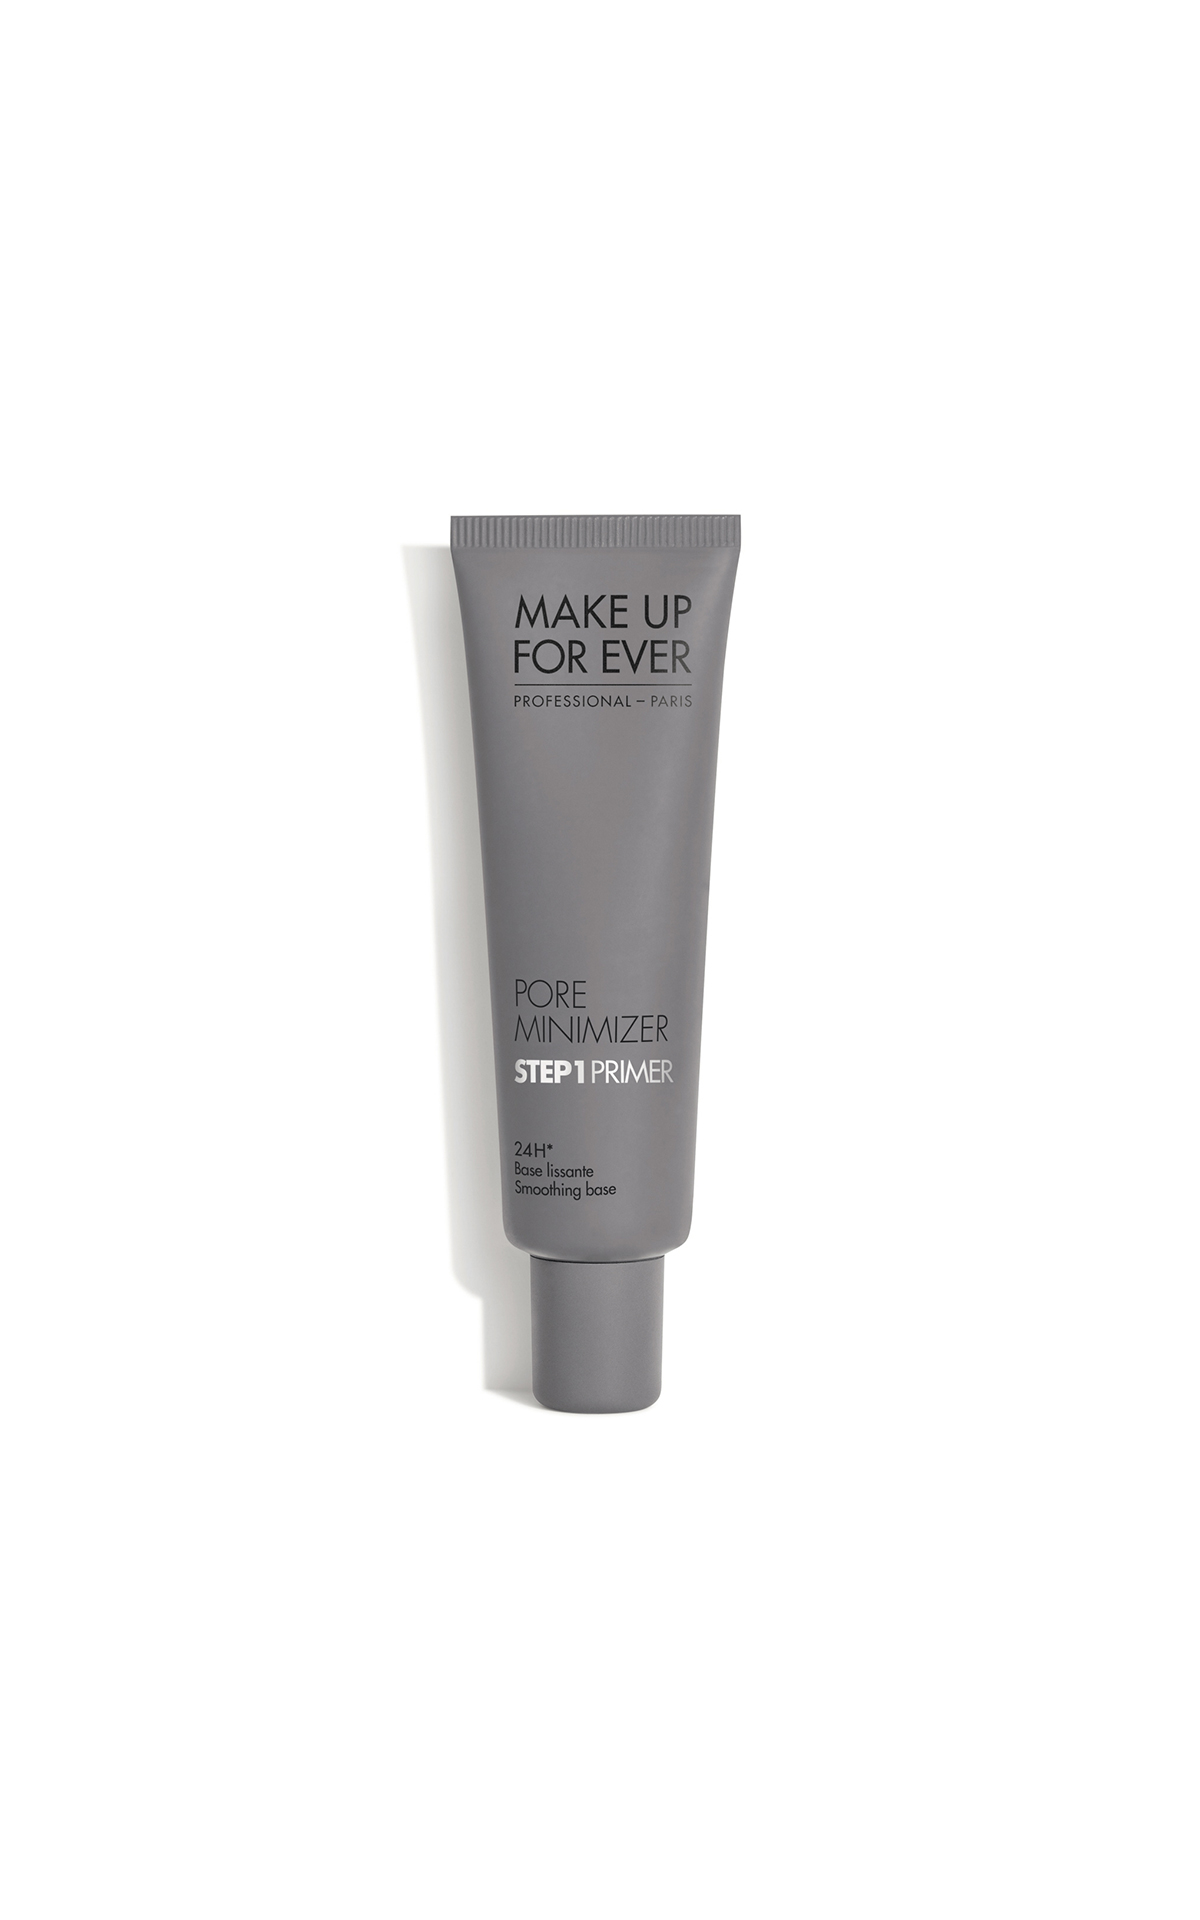 La Vallée Village Make Up For Ever STEP1 primer Pore minimizer